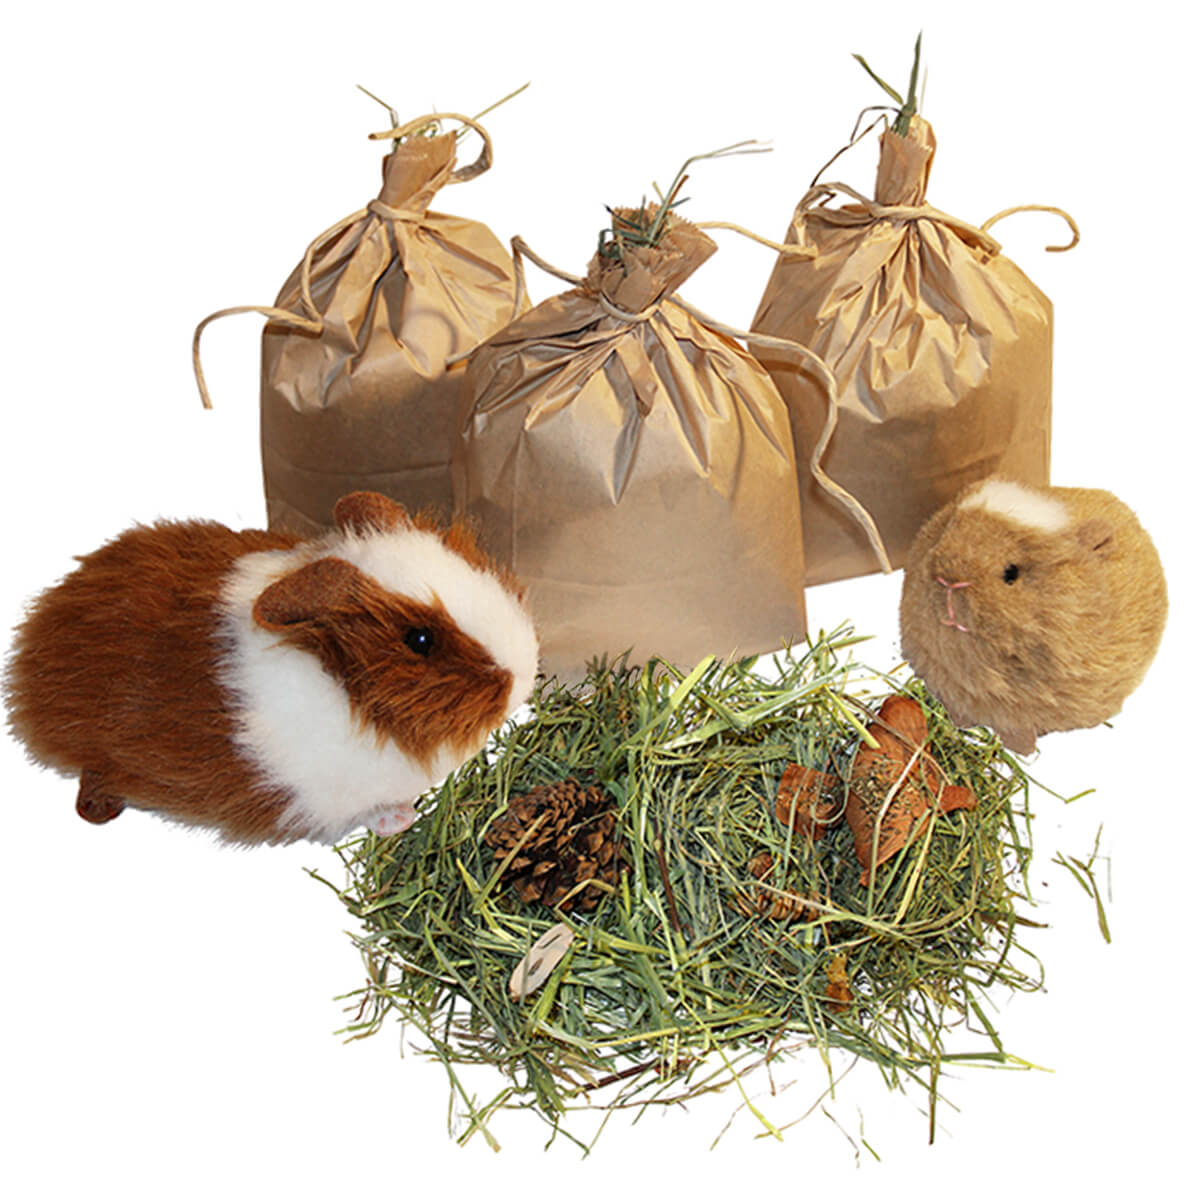 Tasty Treat Bags with Fresh Hay, Herbs and Treats